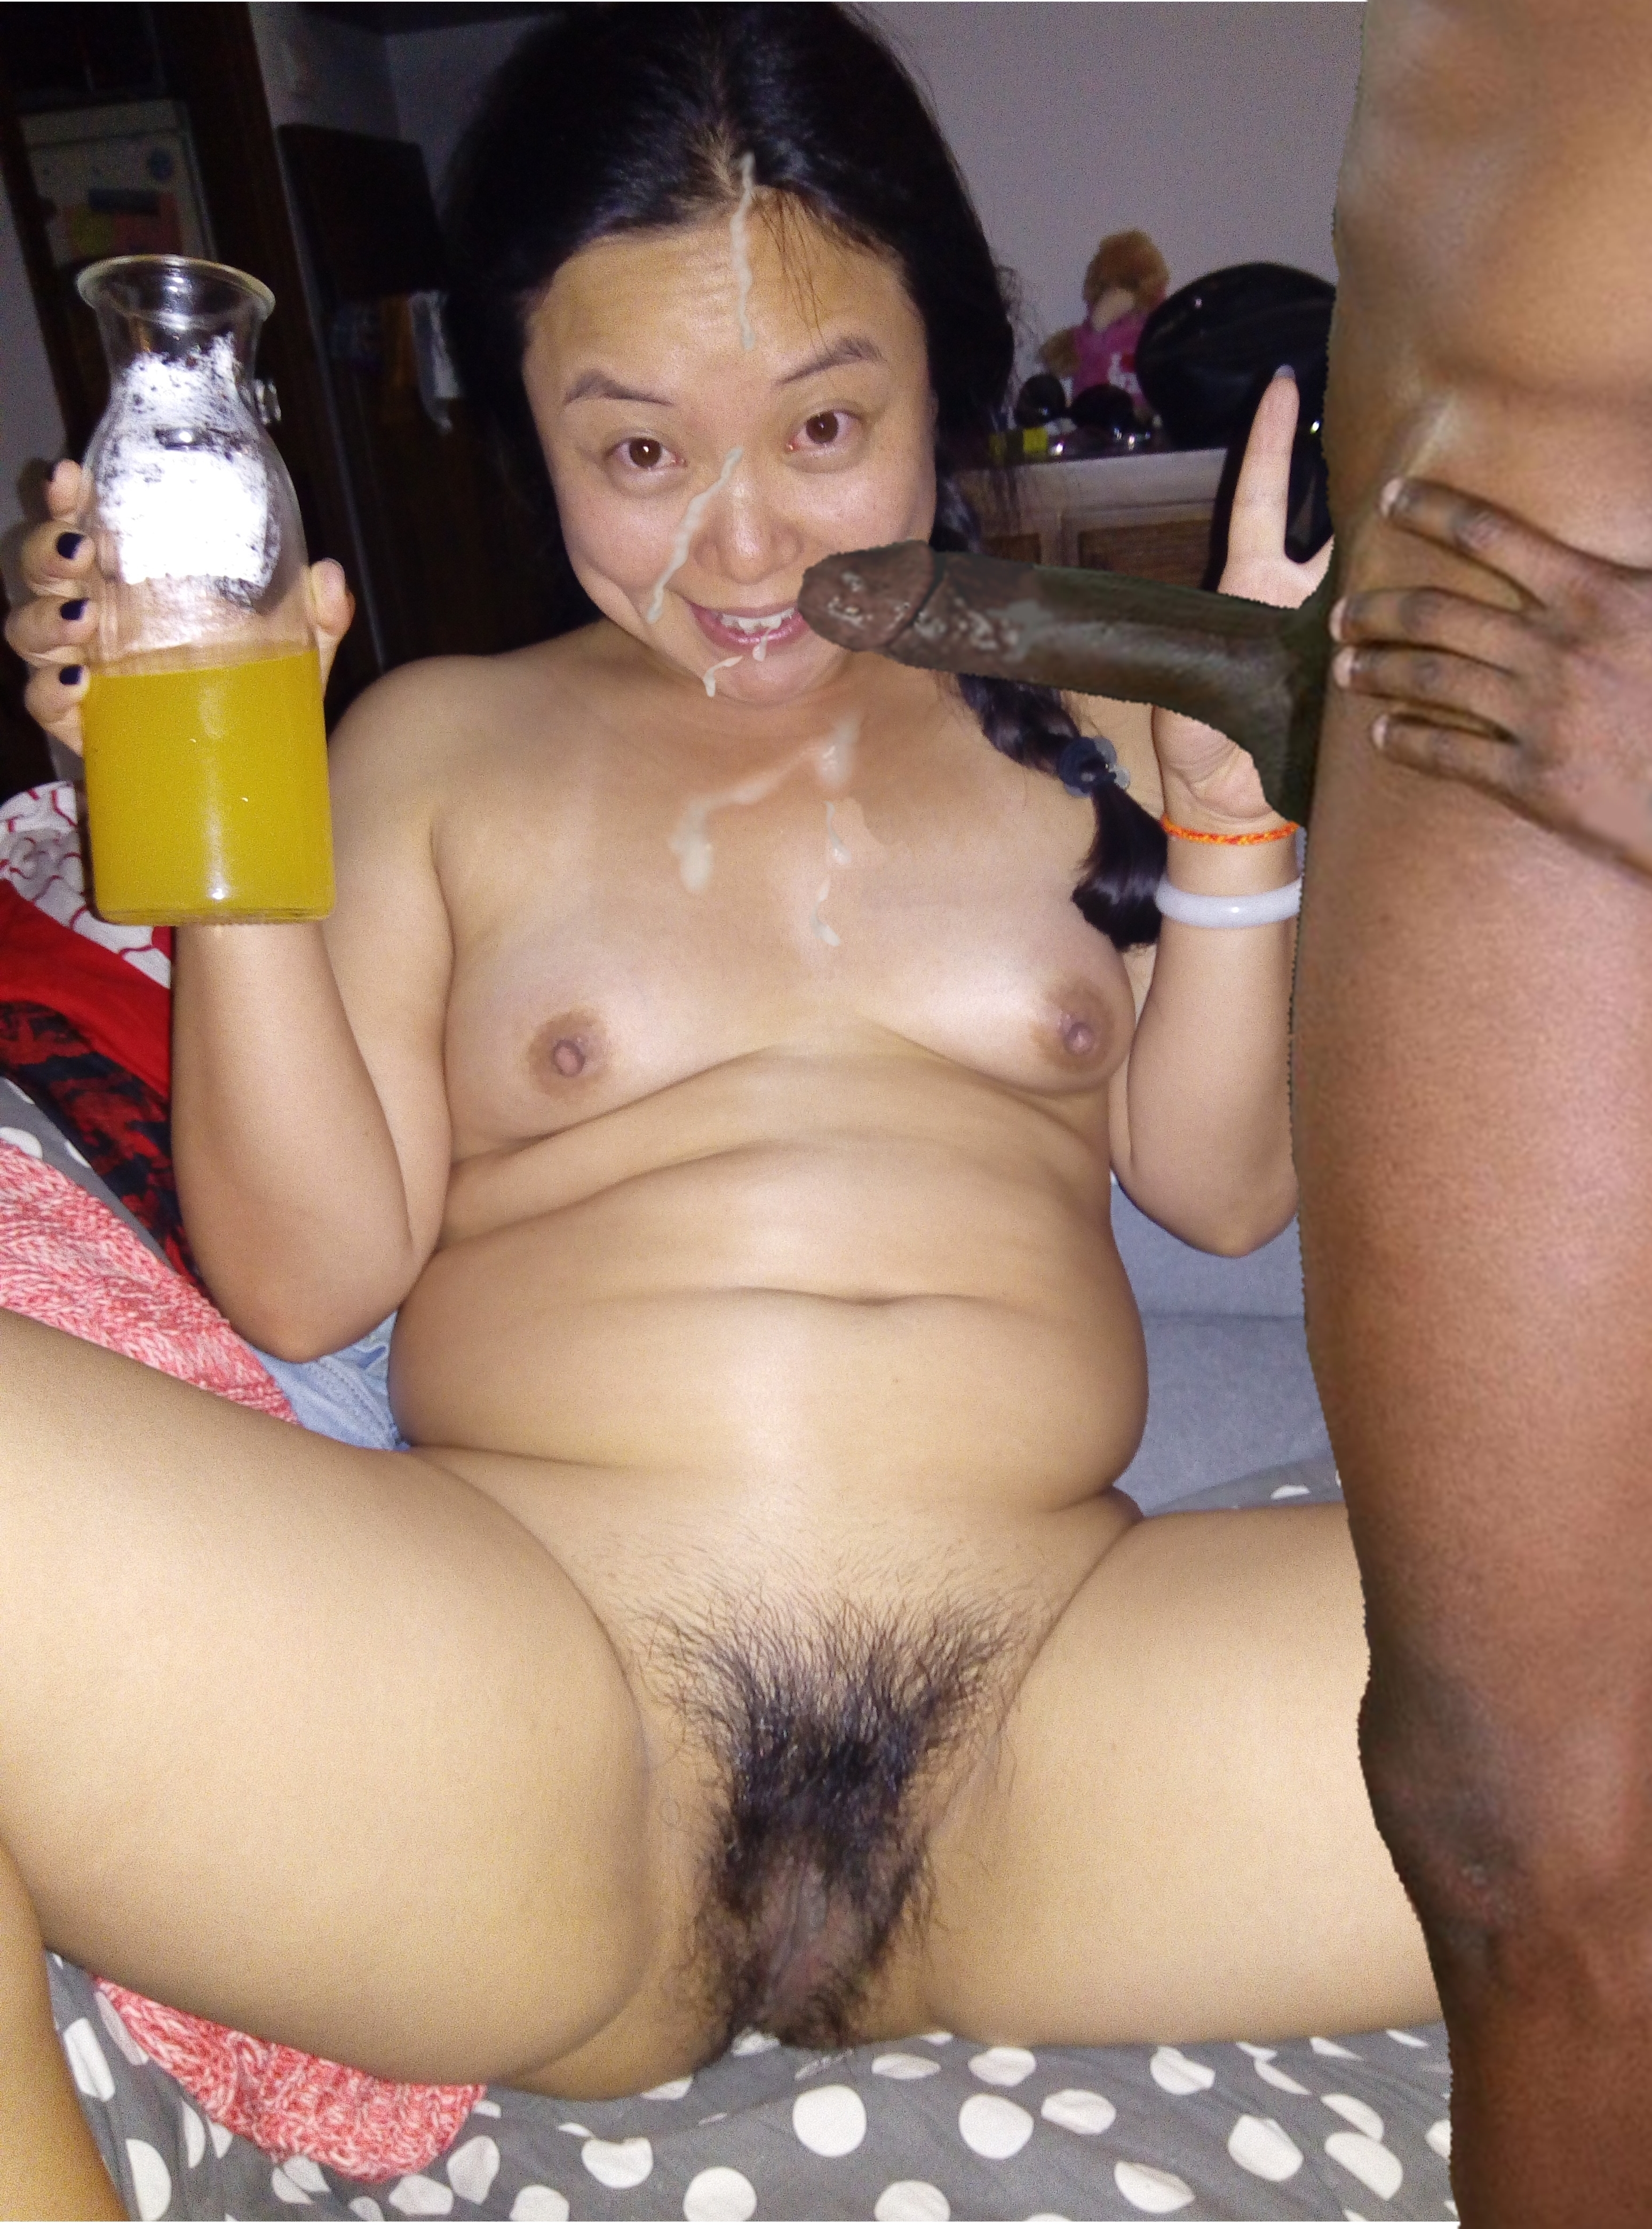 Asian find wife, real mom pussy pic